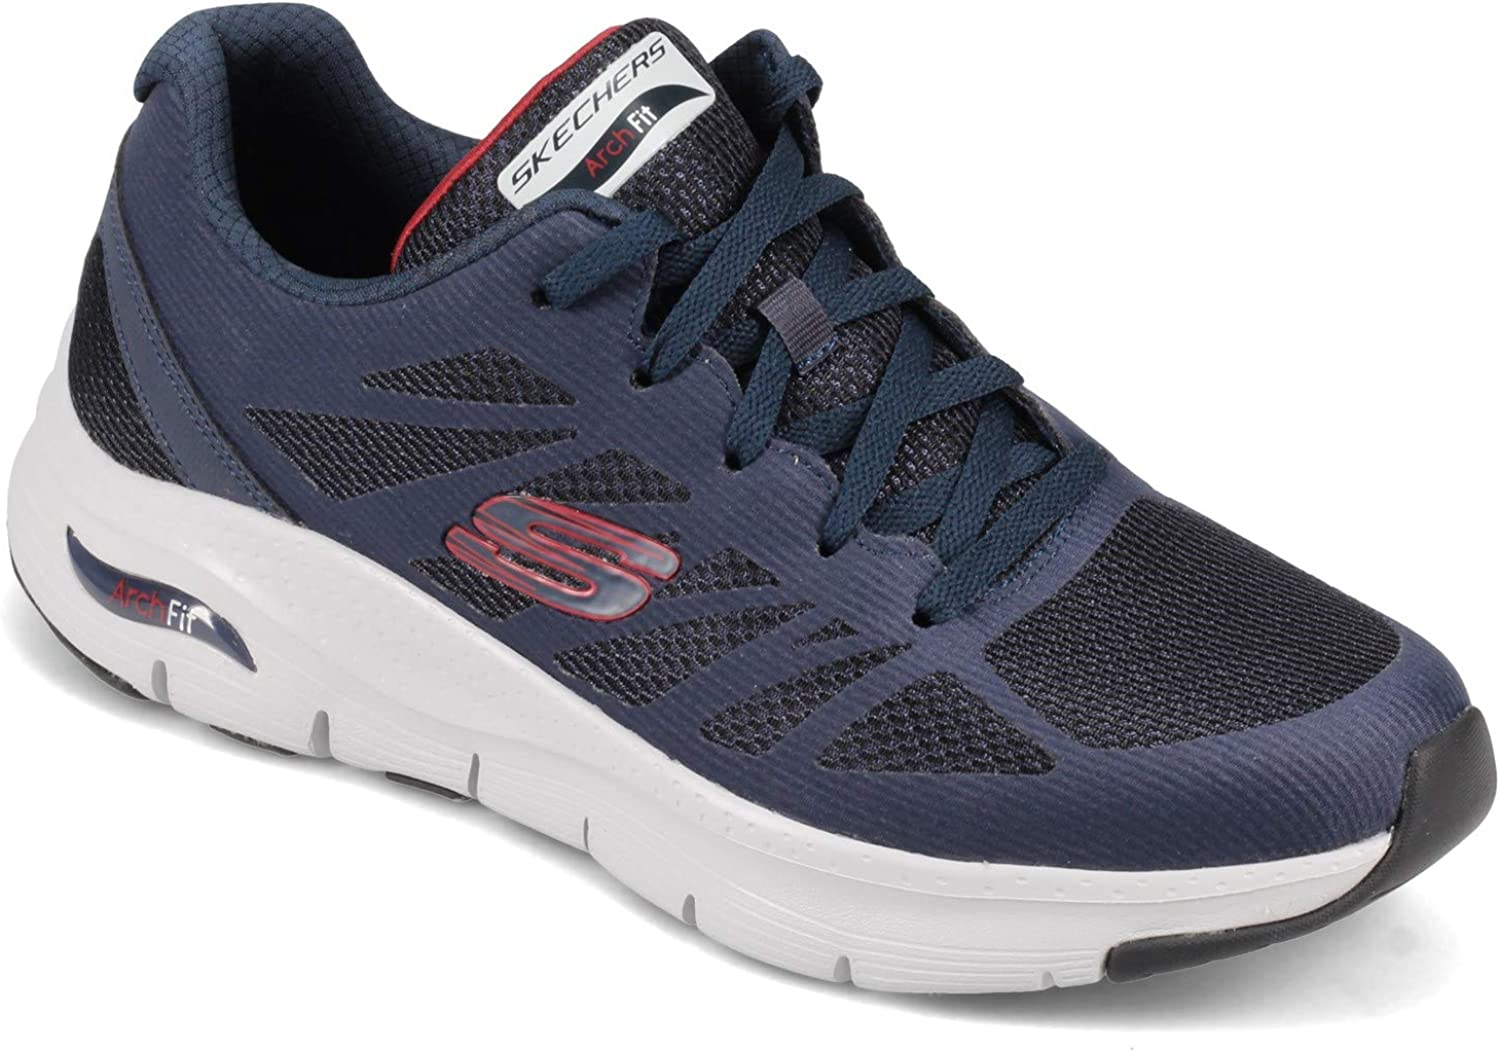 Skechers Men's 2020新作 Arch Fit 送料無料(一部地域を除く) Shoes Back Charge